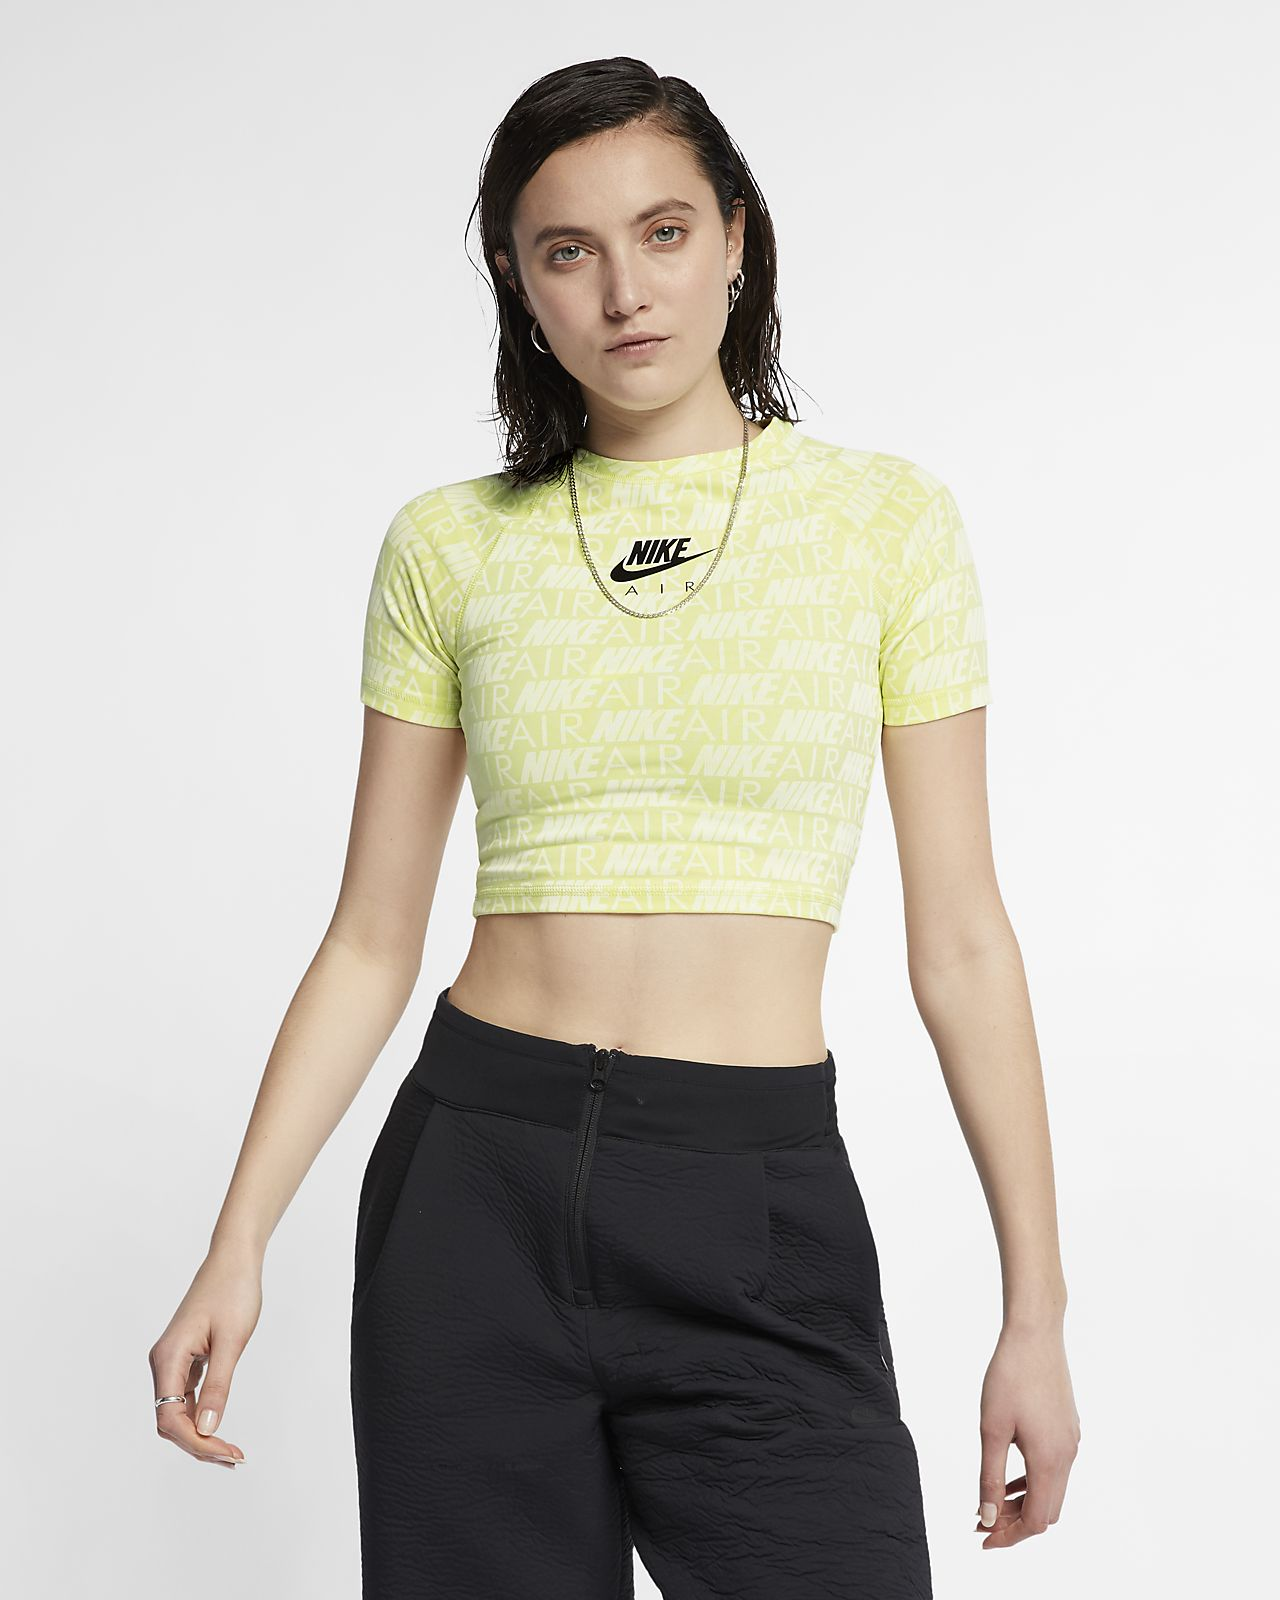 Nike Air Women's Short-Sleeve Print Top